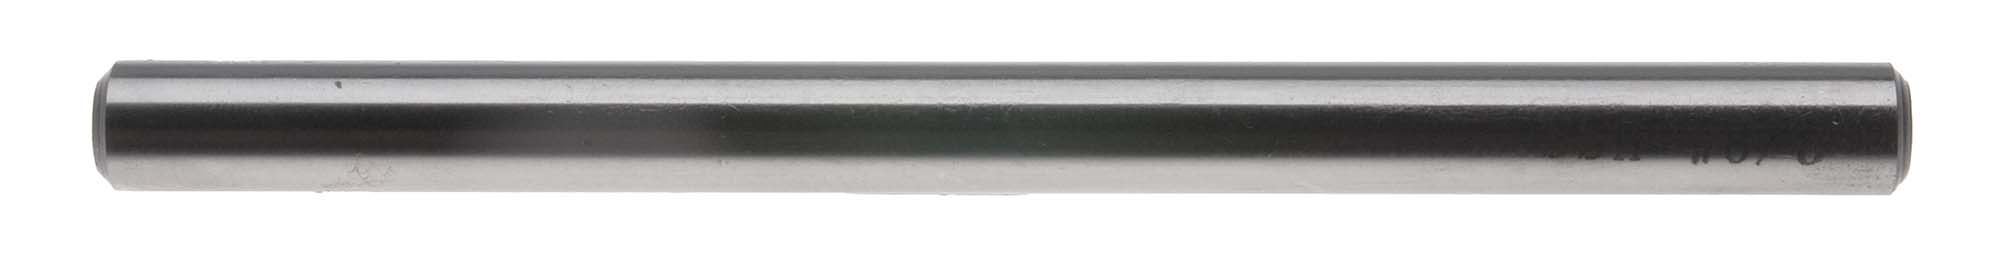 "#41 (.0960"") Jobber Length Drill Blank, High Speed Steel"